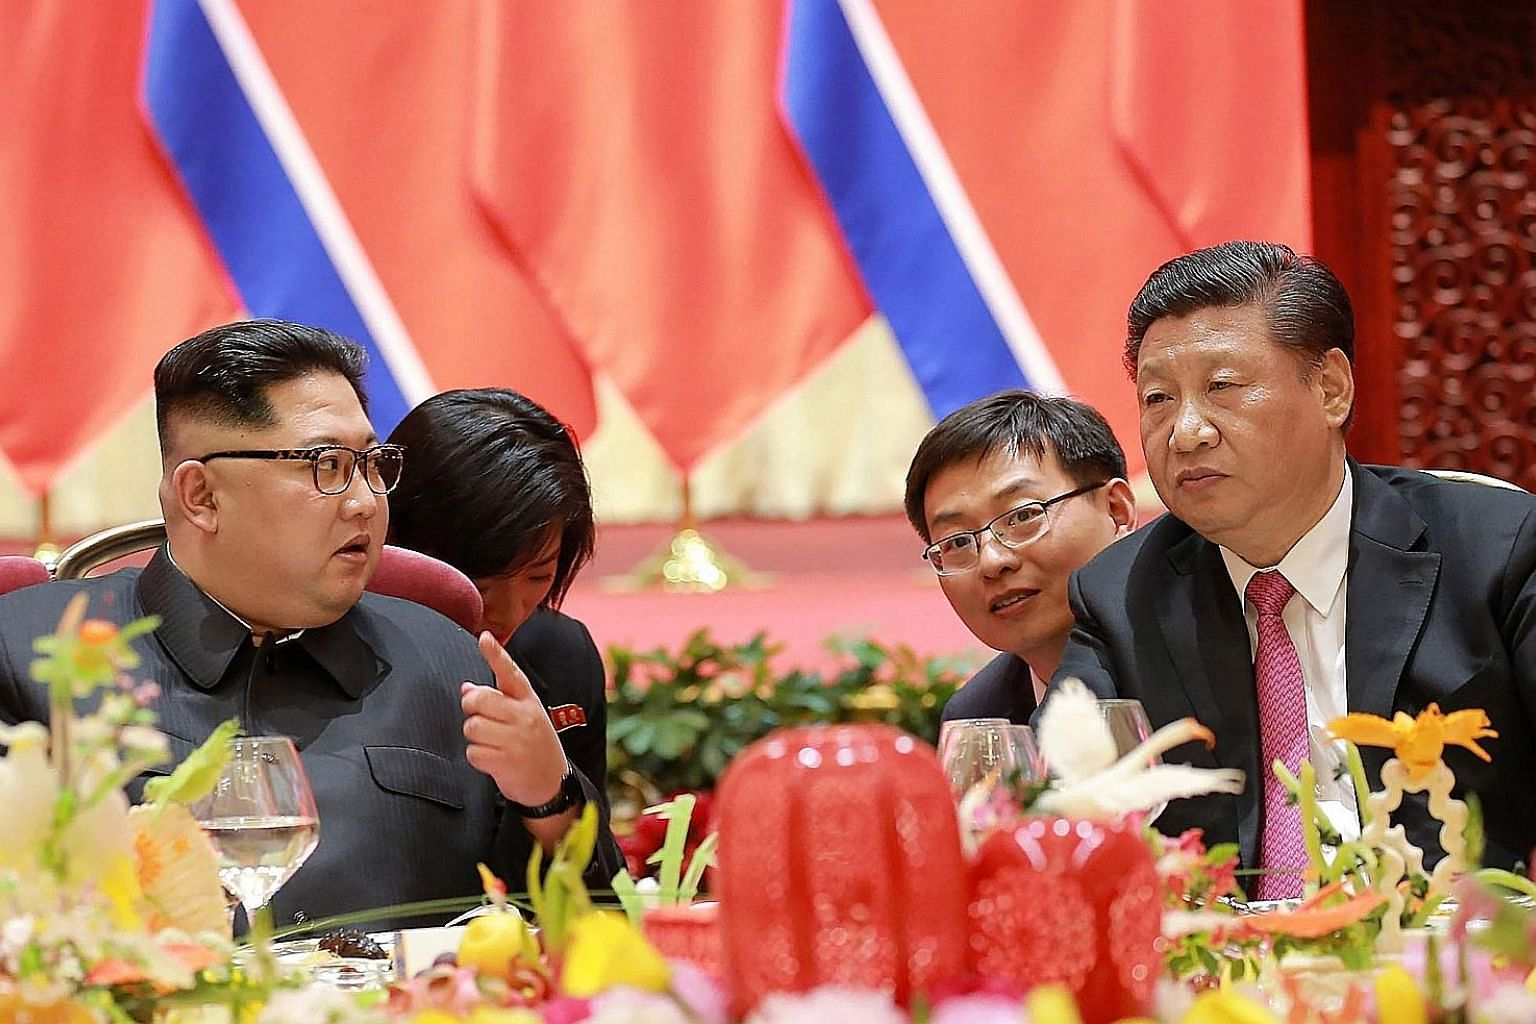 Mr Kim Jong Un with Chinese President Xi Jinping at a banquet in the city of Dalian during the North Korean leader's visit to China on May 7. The writer says China has always been, and always will be, a pushing hand behind the resolution of the Korea